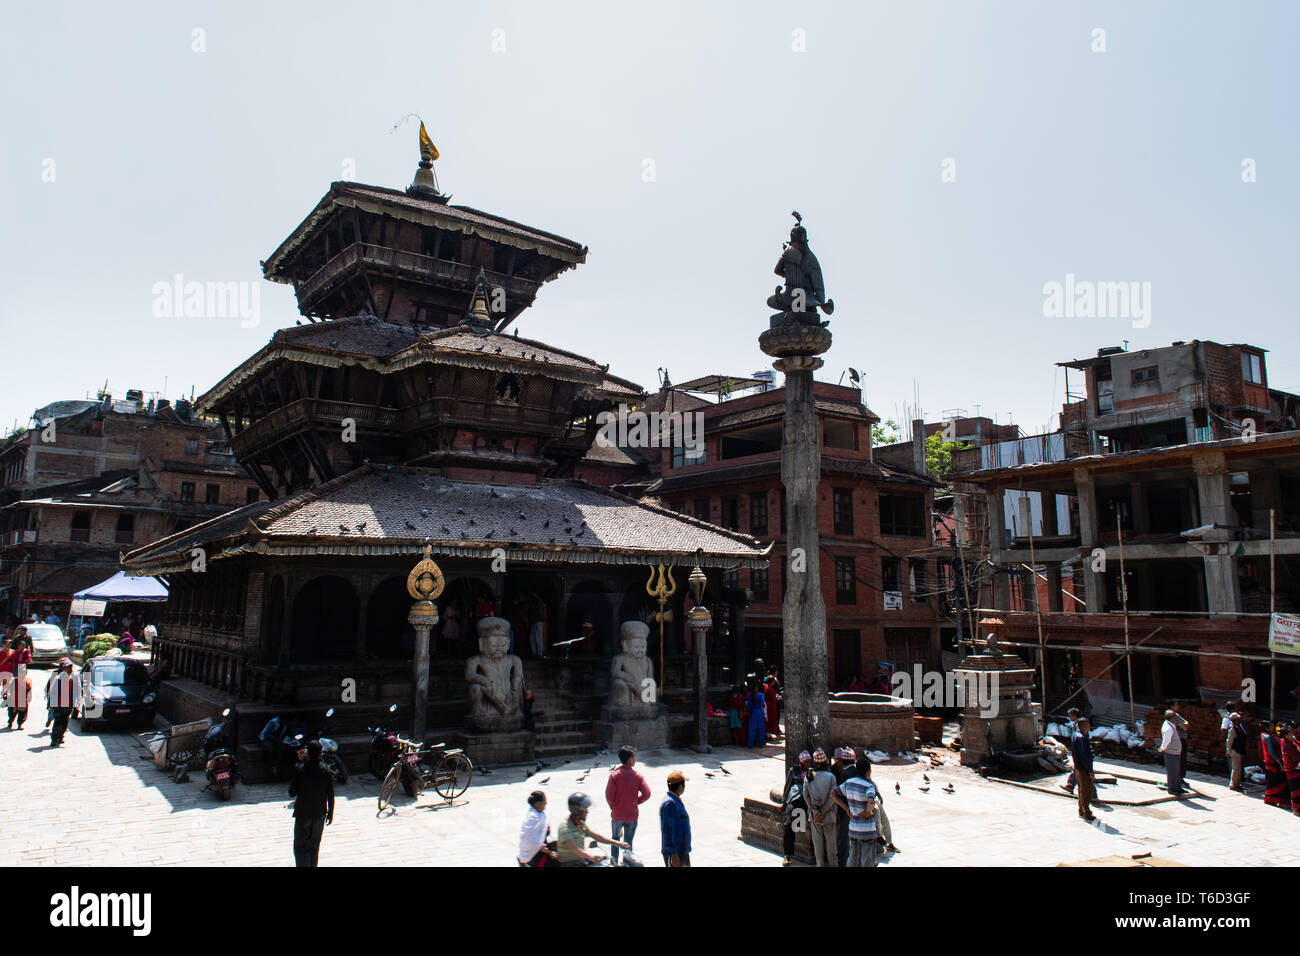 Bhaktapur, Vallée de Katmandou / Népal - avril 17th, 2019 - Les sections locales au Temple de Dattatreya et place de la ville. Photo Stock